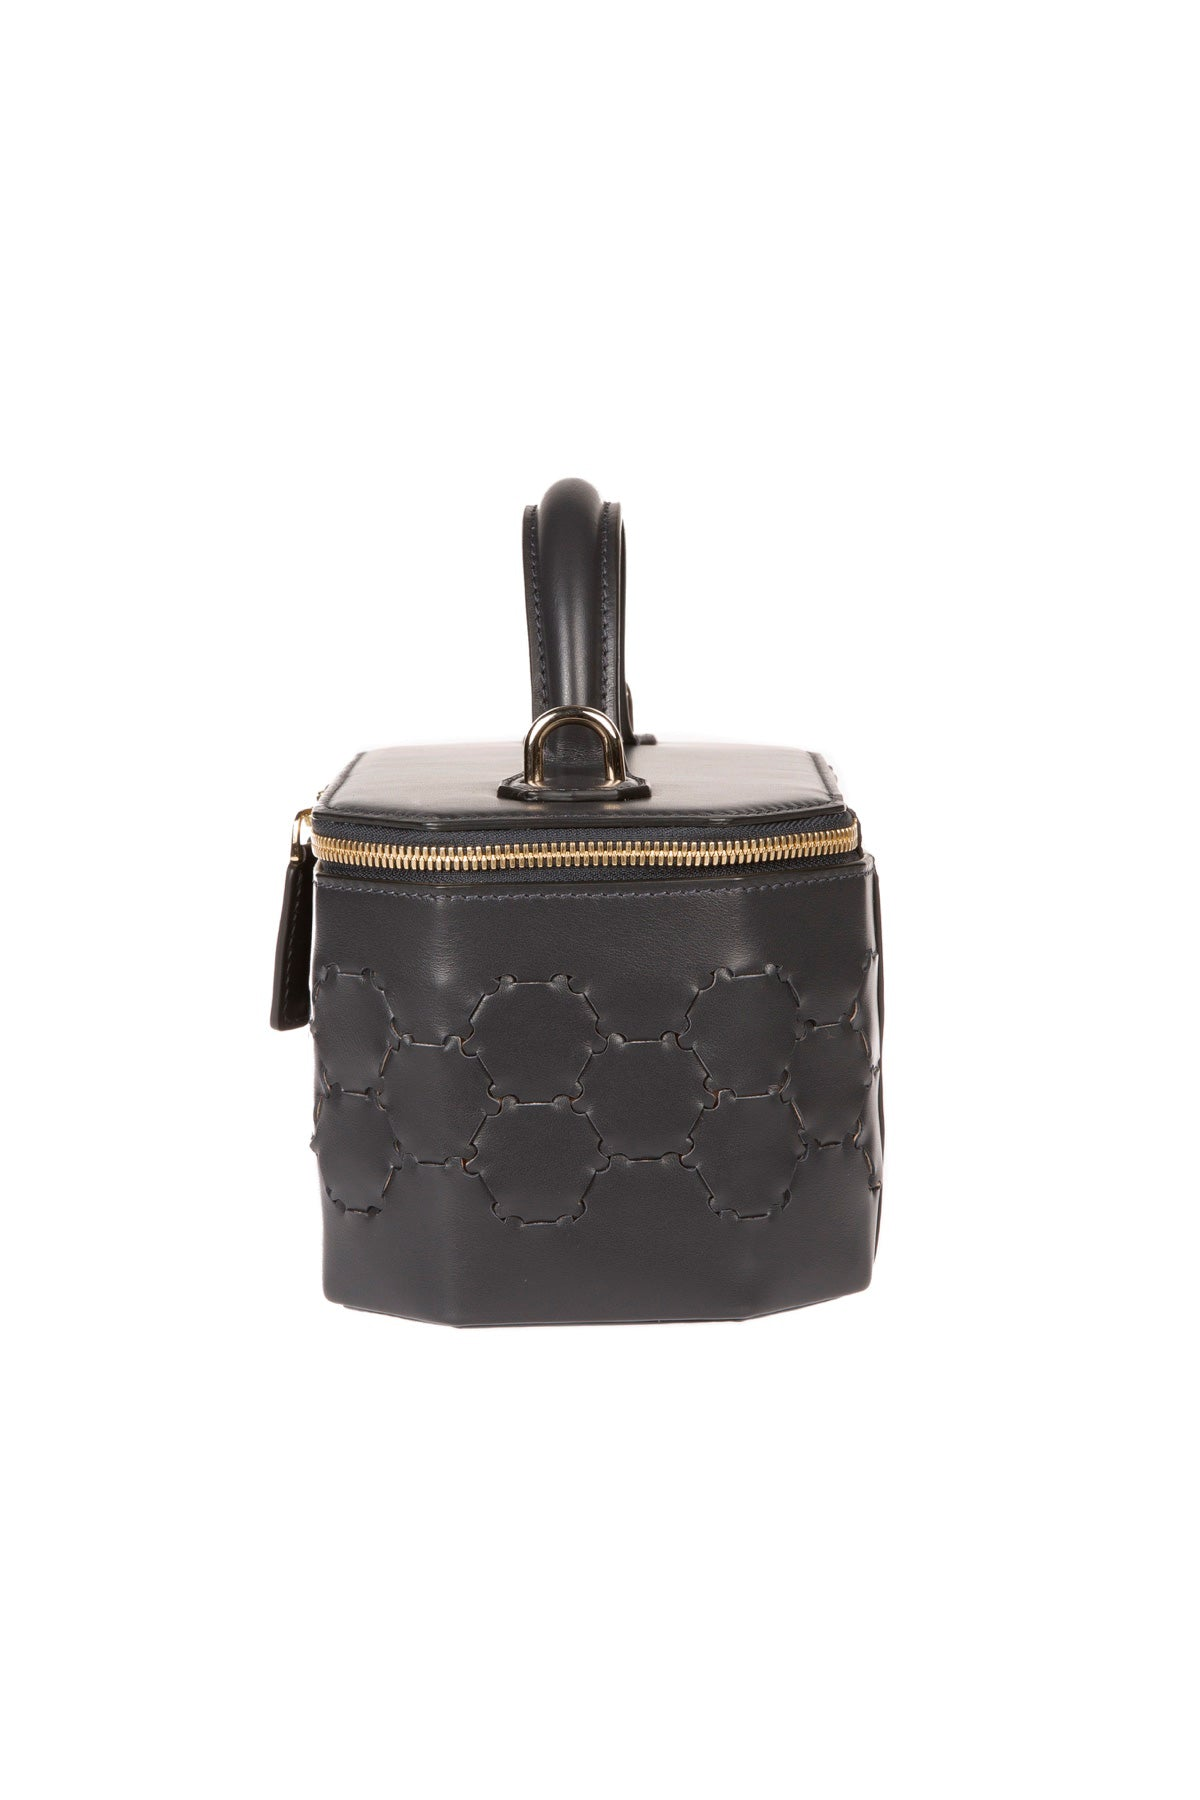 S A F I Y E | Jewellery Bag Anthracite